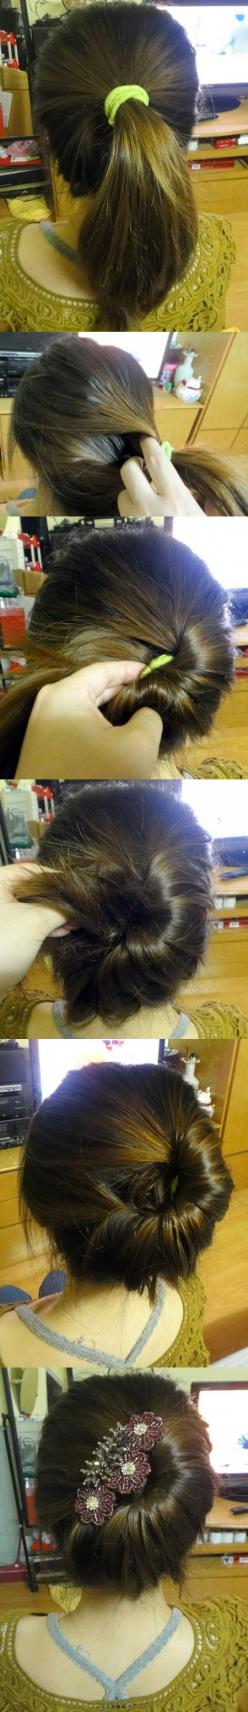 Need to try this...looks very simple and functional for school/work!: Hairstyles, Idea, Hair Styles, Hairdos, Makeup, Hair Do, Updos, Side Bun, French Twist